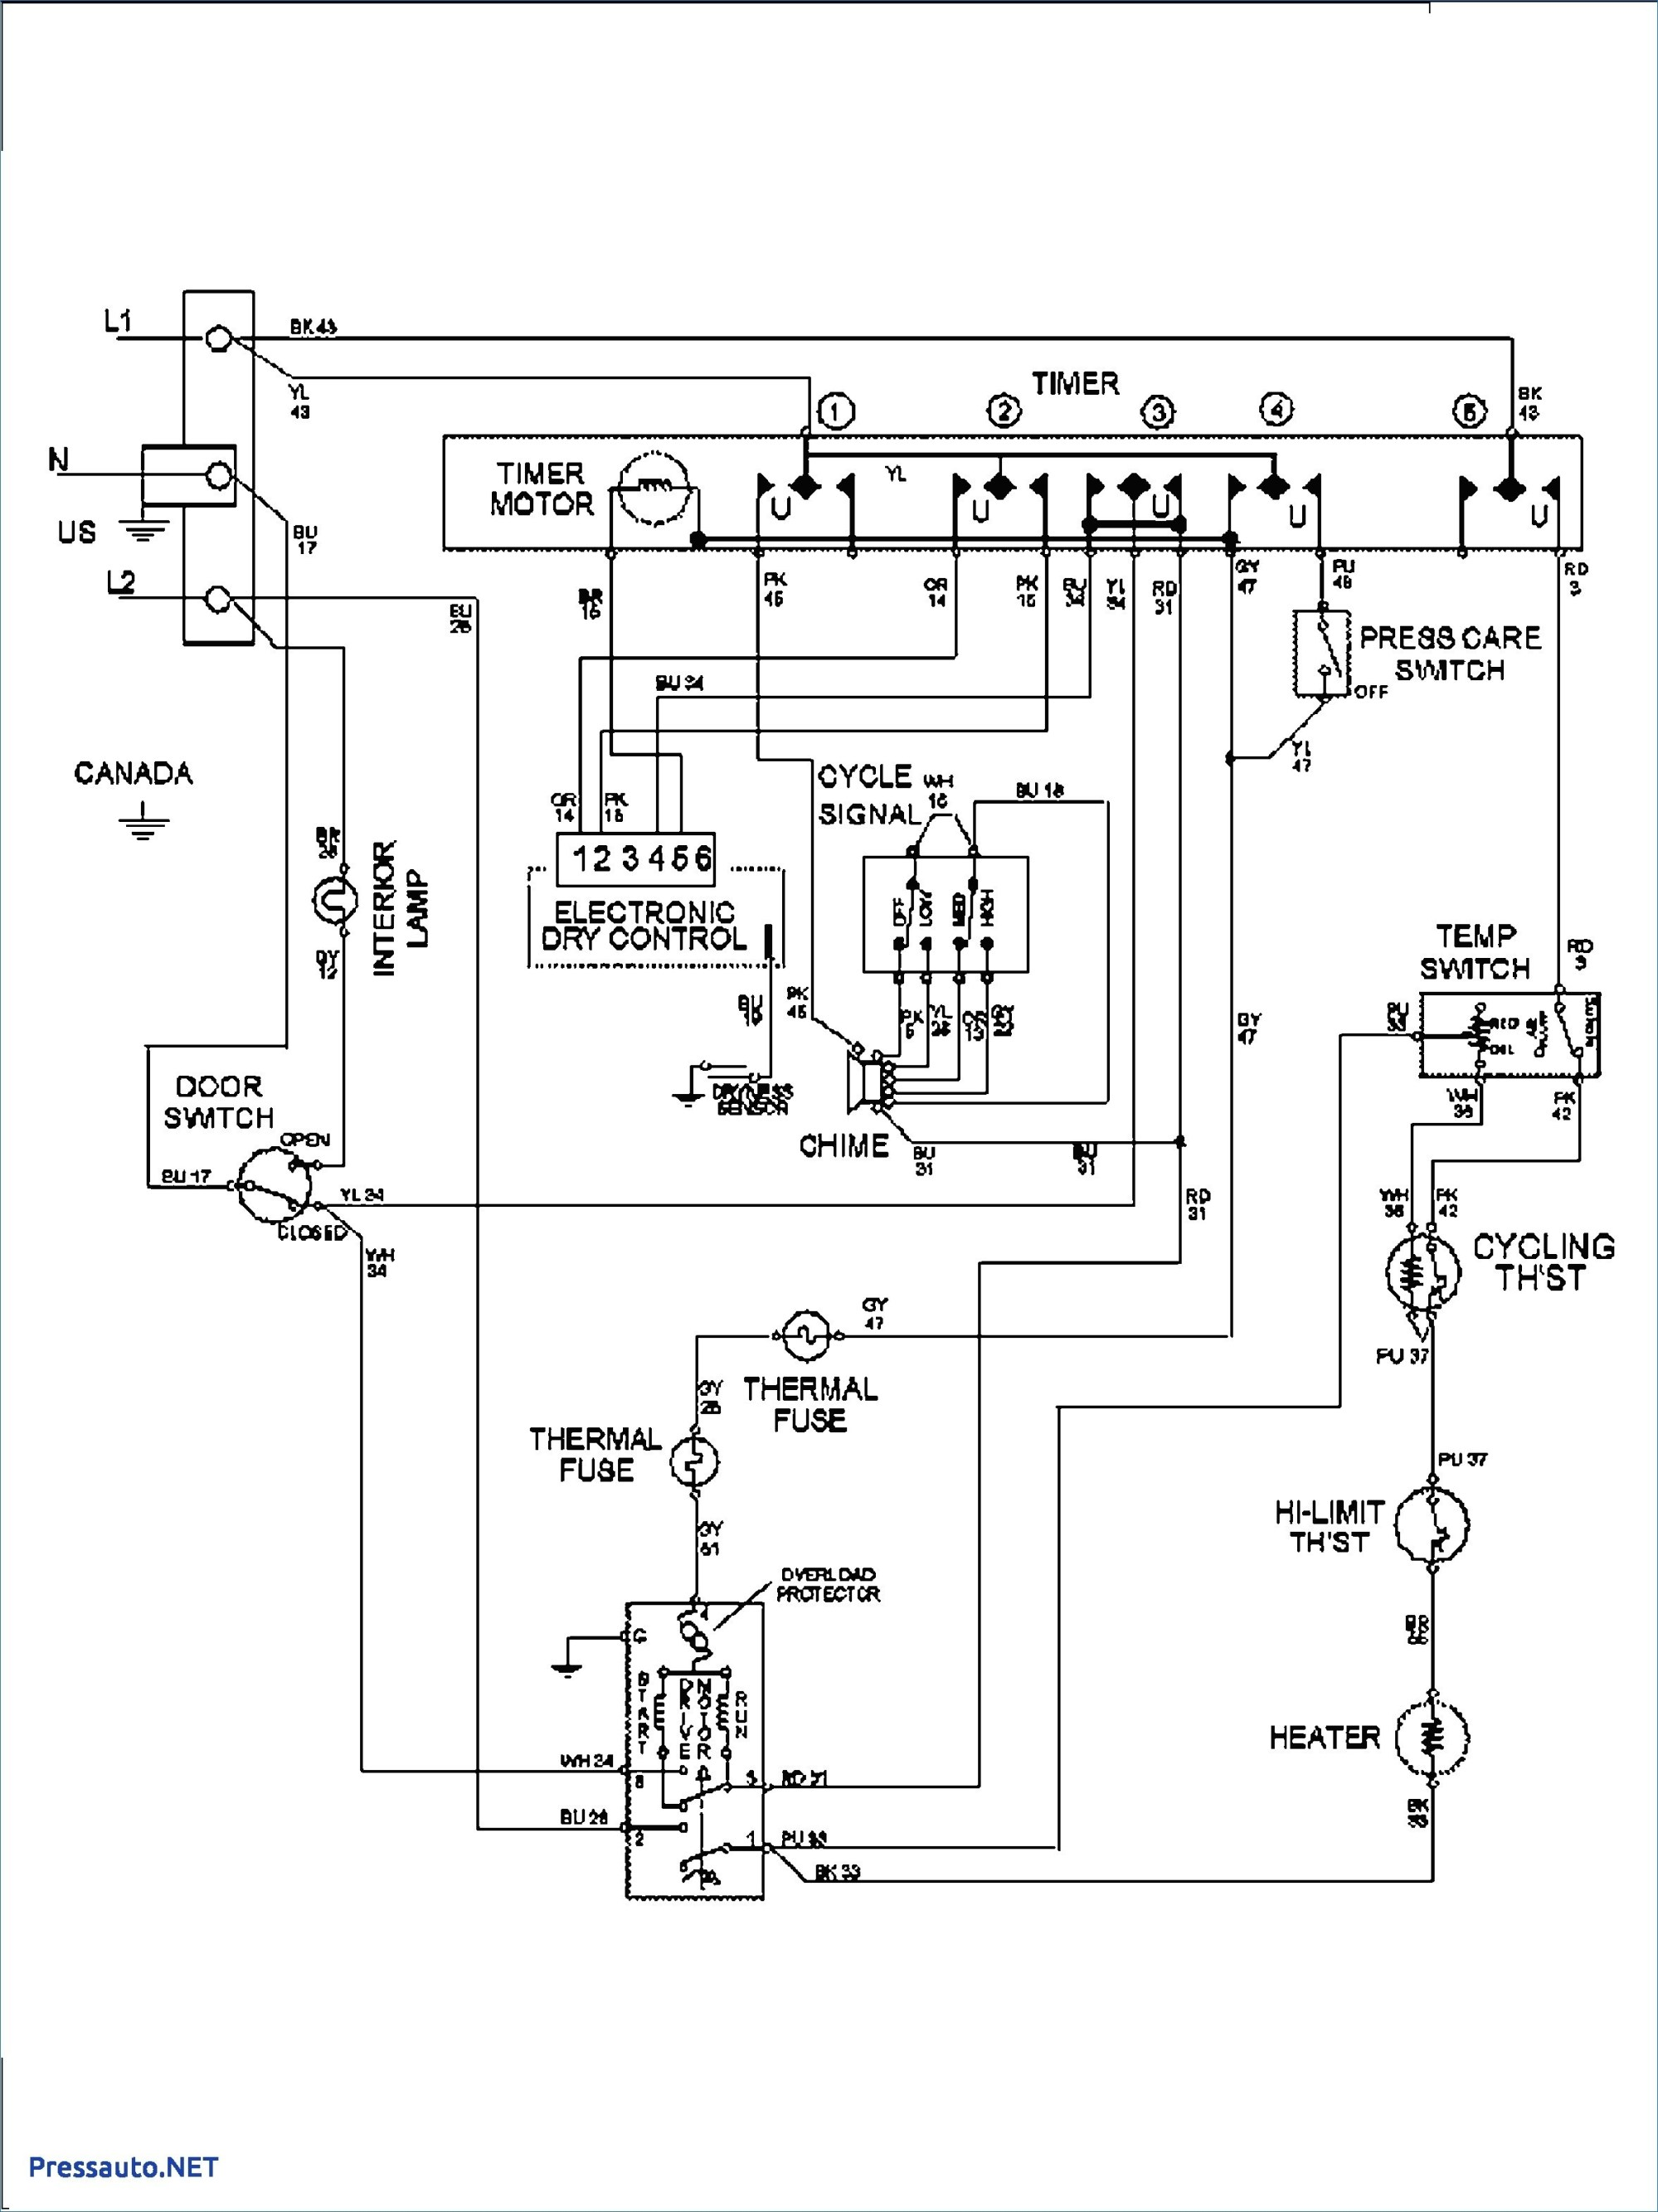 hight resolution of sears headlight wiring diagram free download wiring diagram dryer schematic wiring diagram official site wiring diagramsmaytag